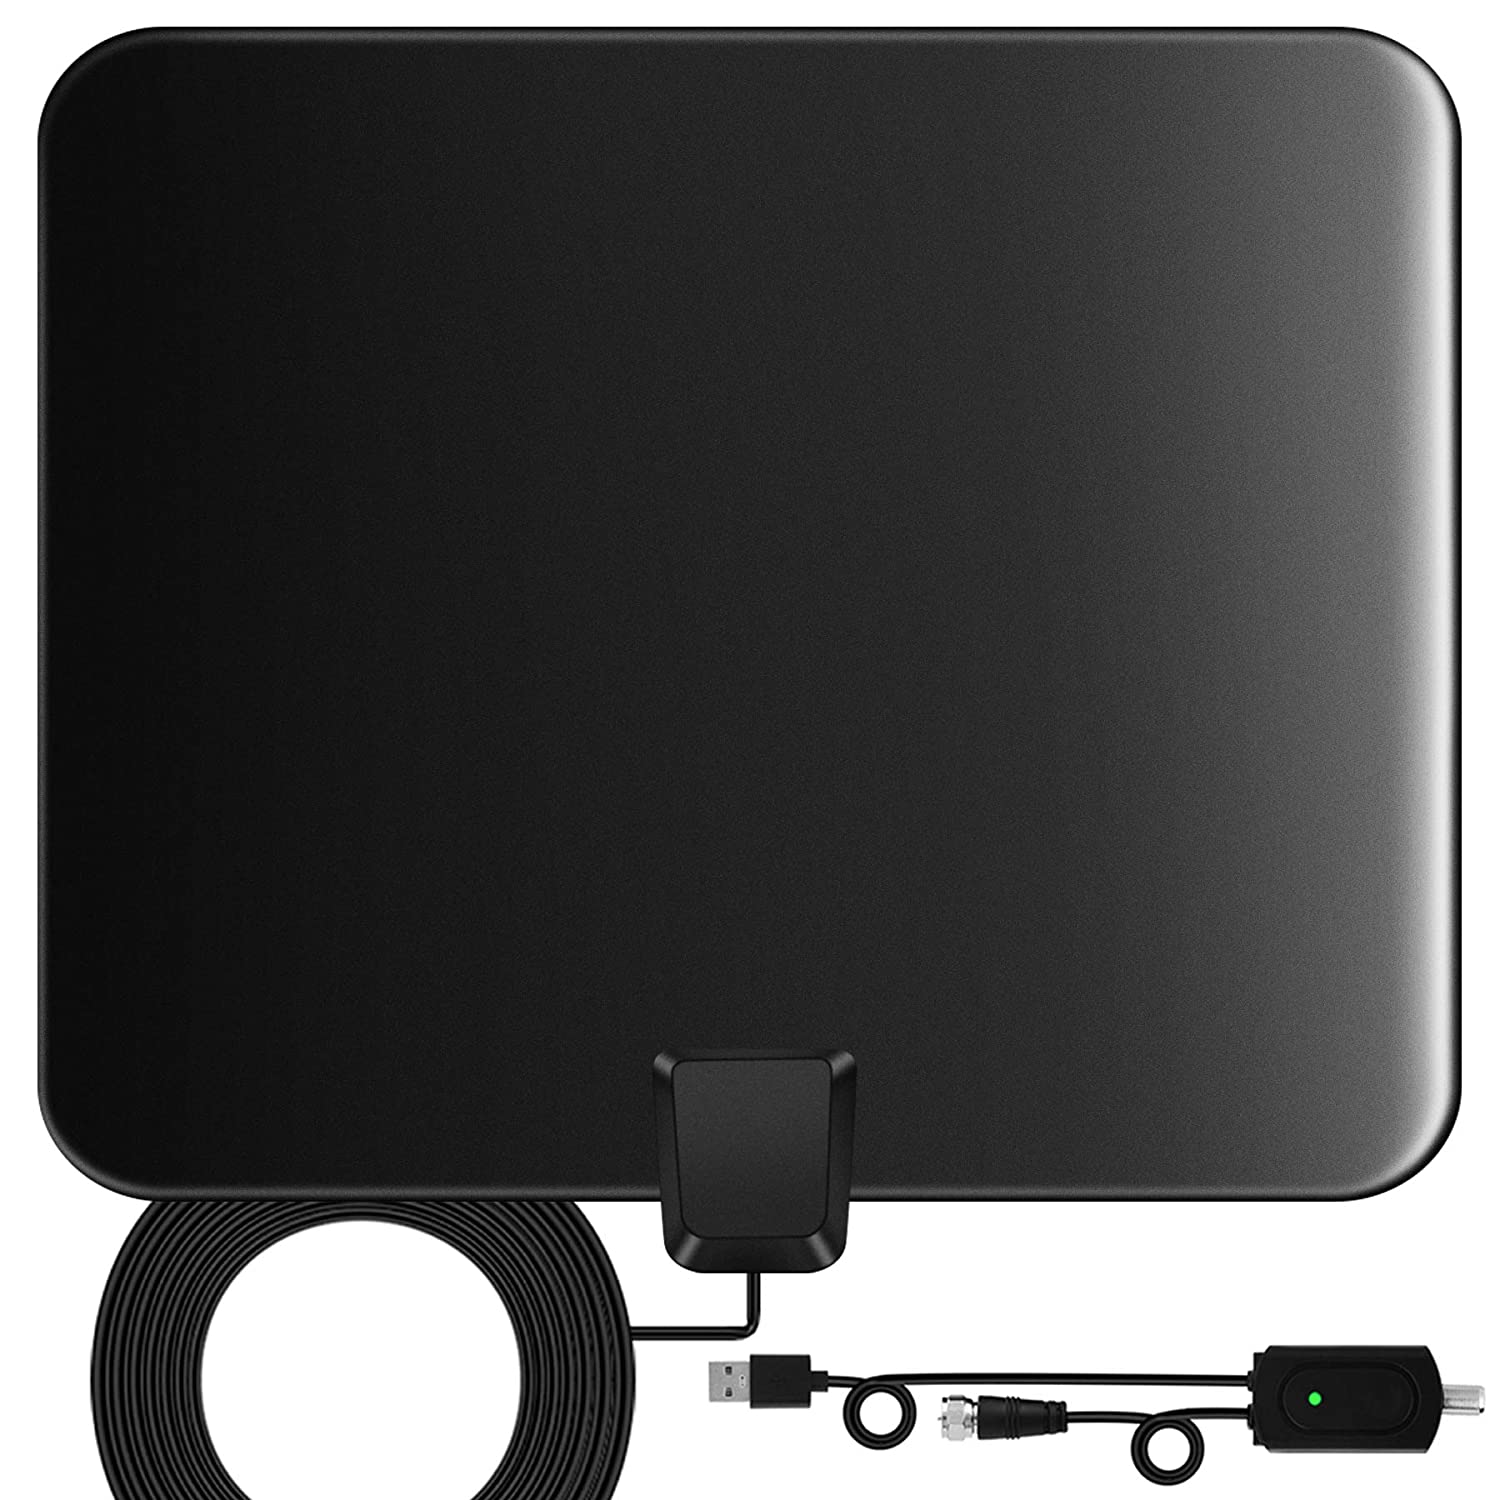 Best Indoor Antenna 2020.Tv Antenna Indoor Digital Hdtv Amplified Television Antenna Freeview 4k 1080p Hd Vhf Uhf For Local Channels 130 Miles Range With Signal Amplifier